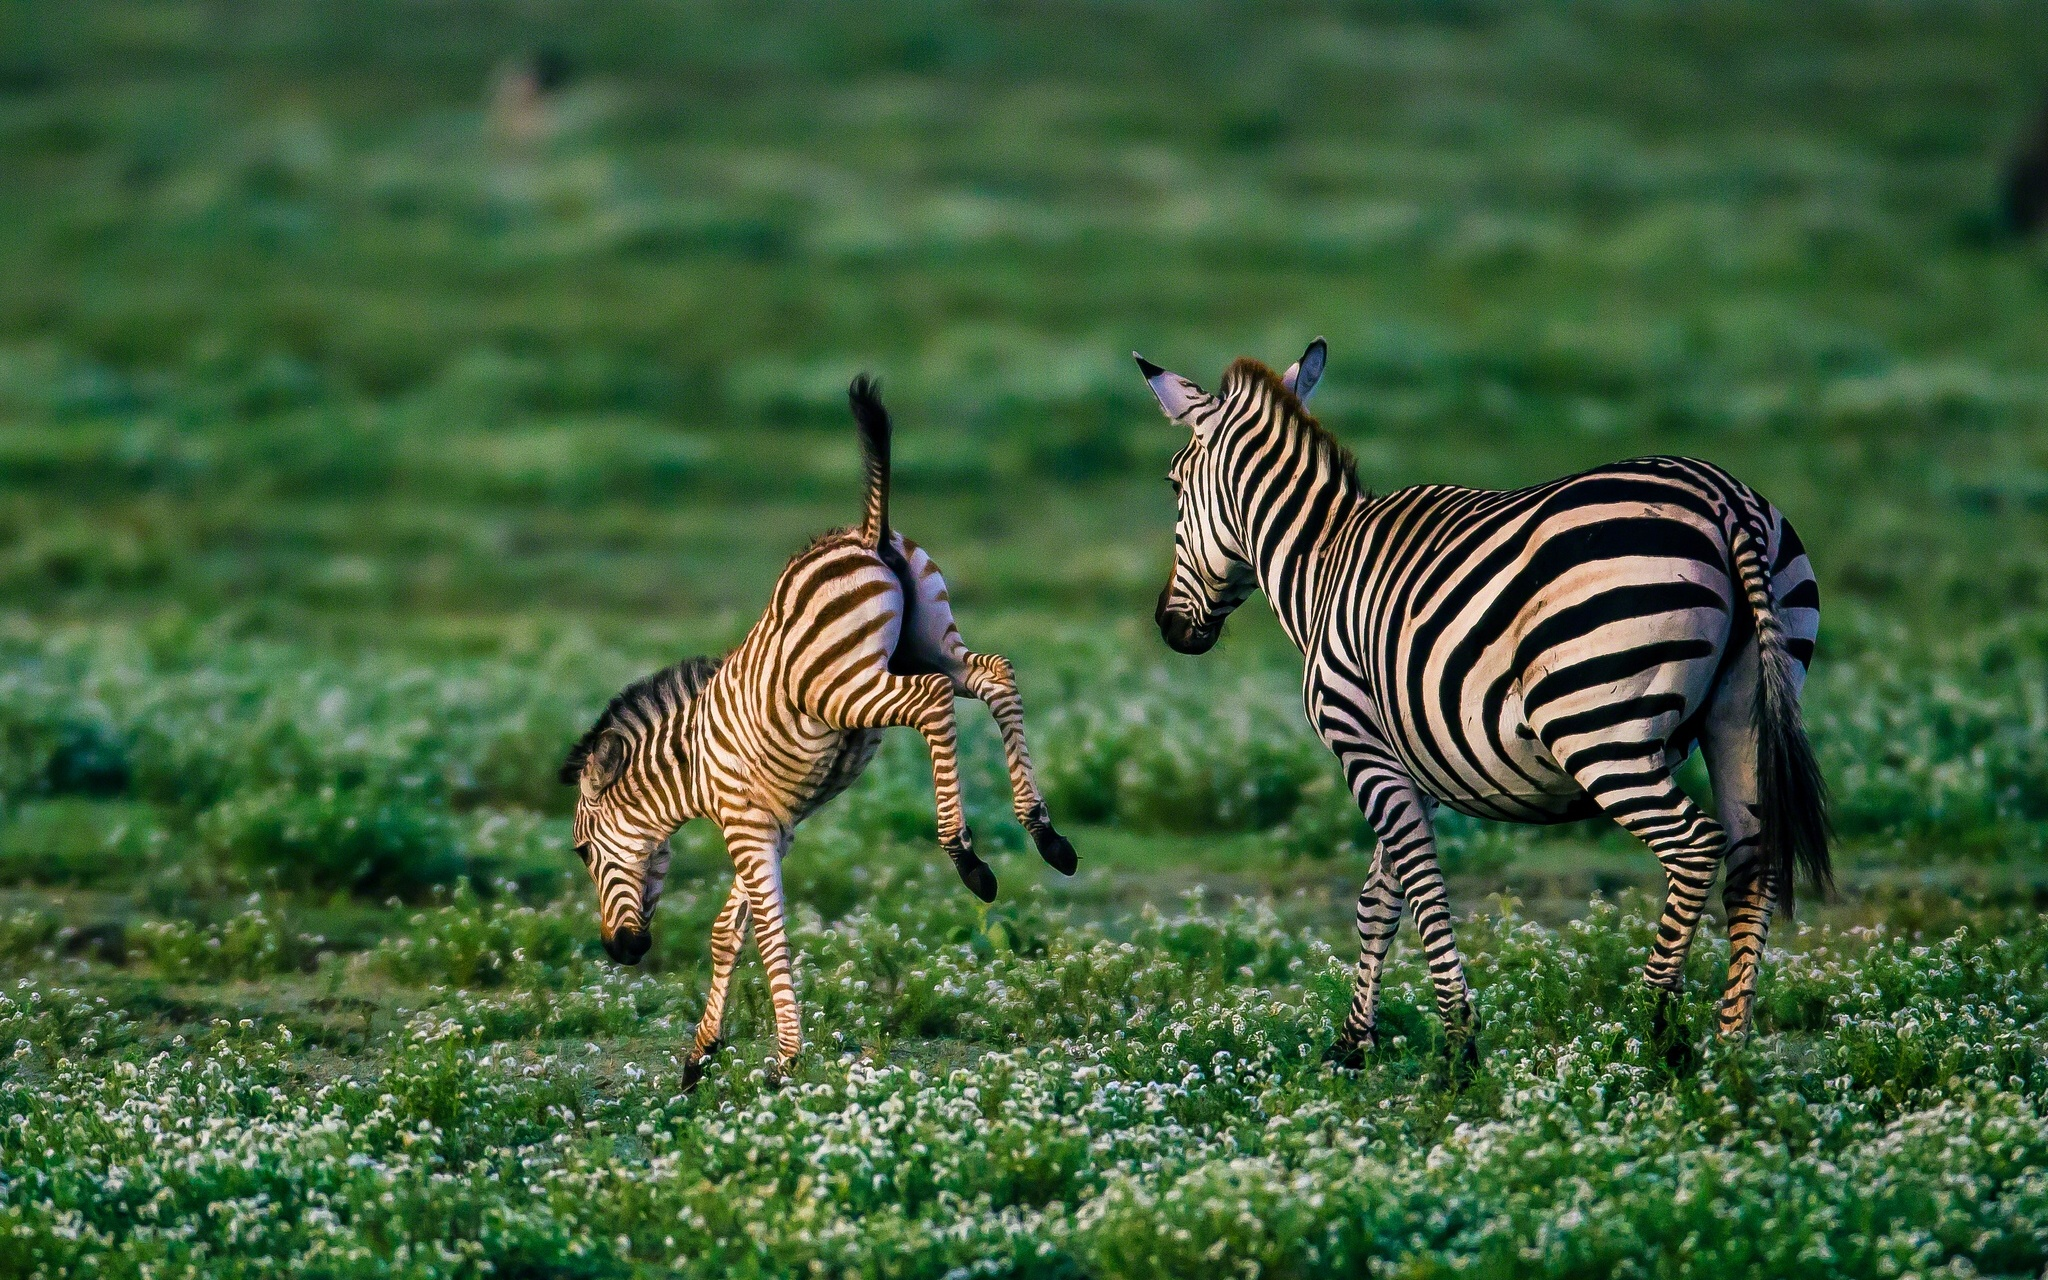 Small Cute Baby Kissing Wallpaper 20 Cute Baby Zebra Pictures Amp Photos Free Download Funnyexpo